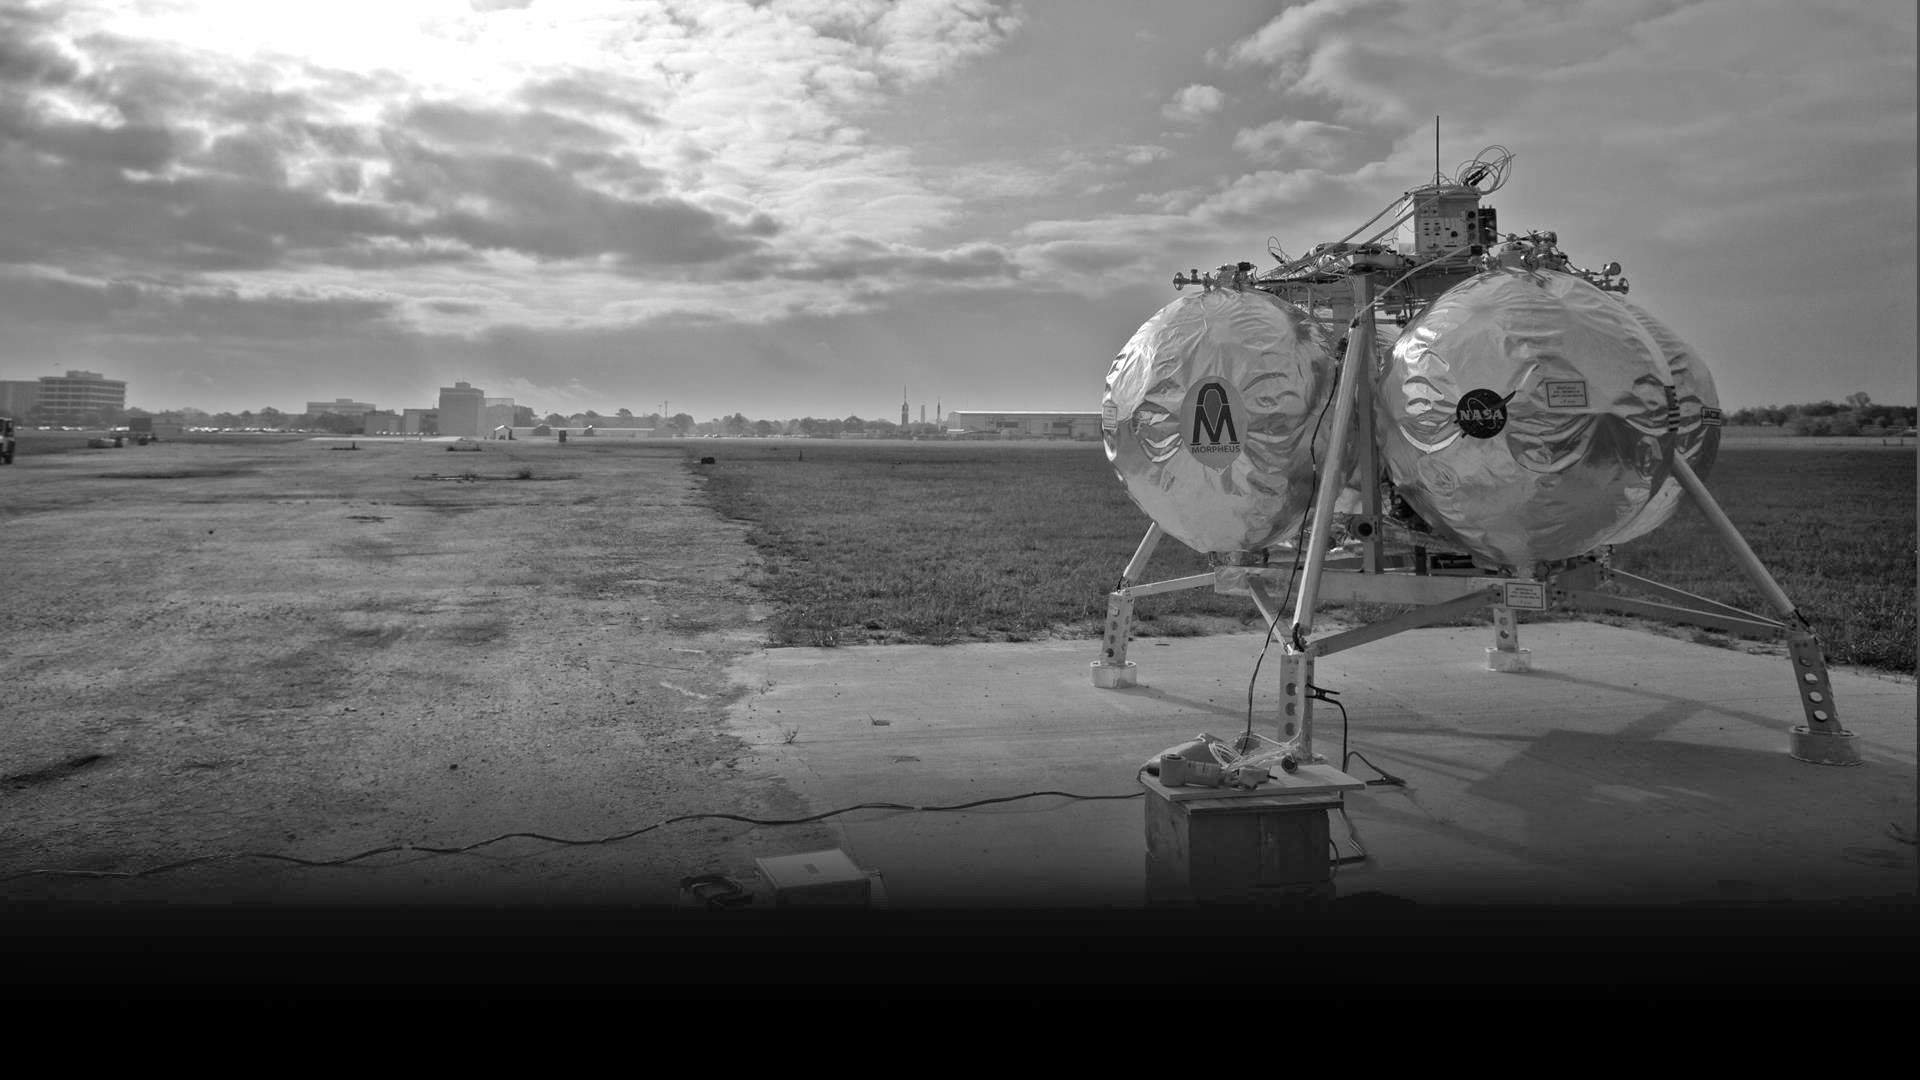 See NASA's Sci Fi-Looking Morpheus Lander in Action